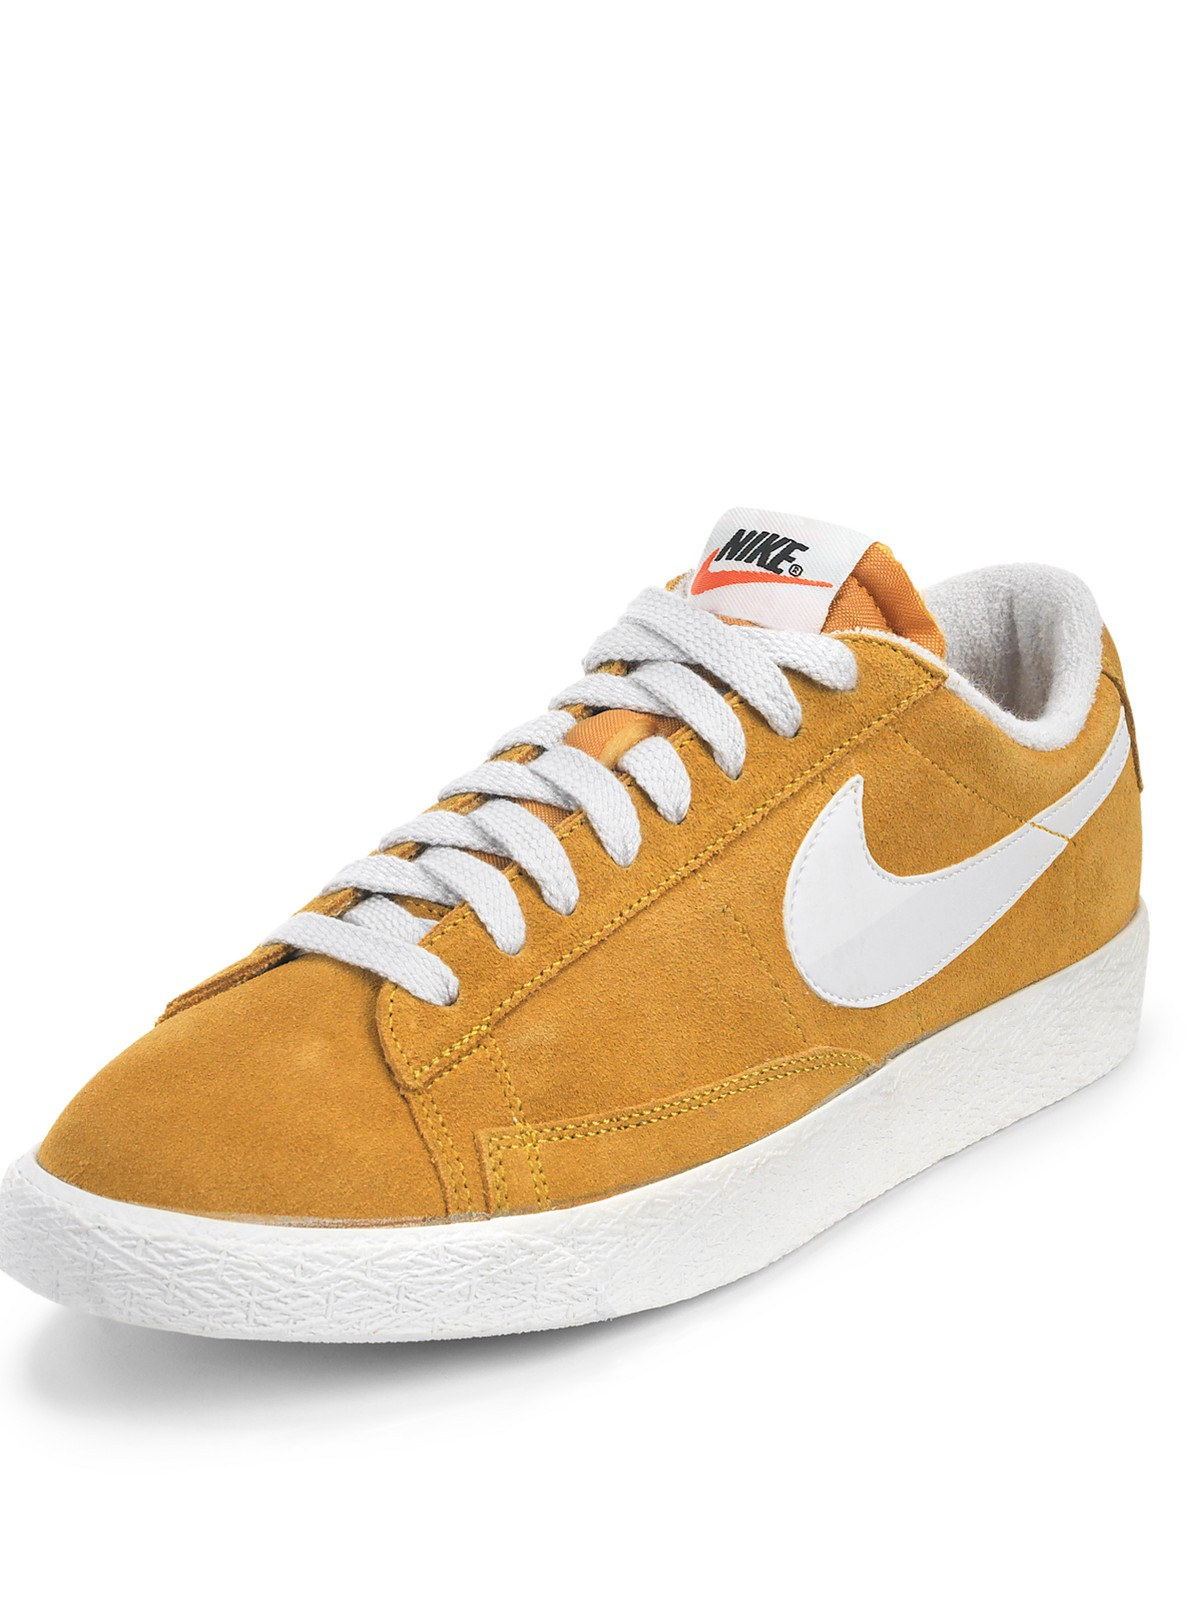 Nike Nike Blazer Low Prm Vntg Suede Mens Trainers in ...